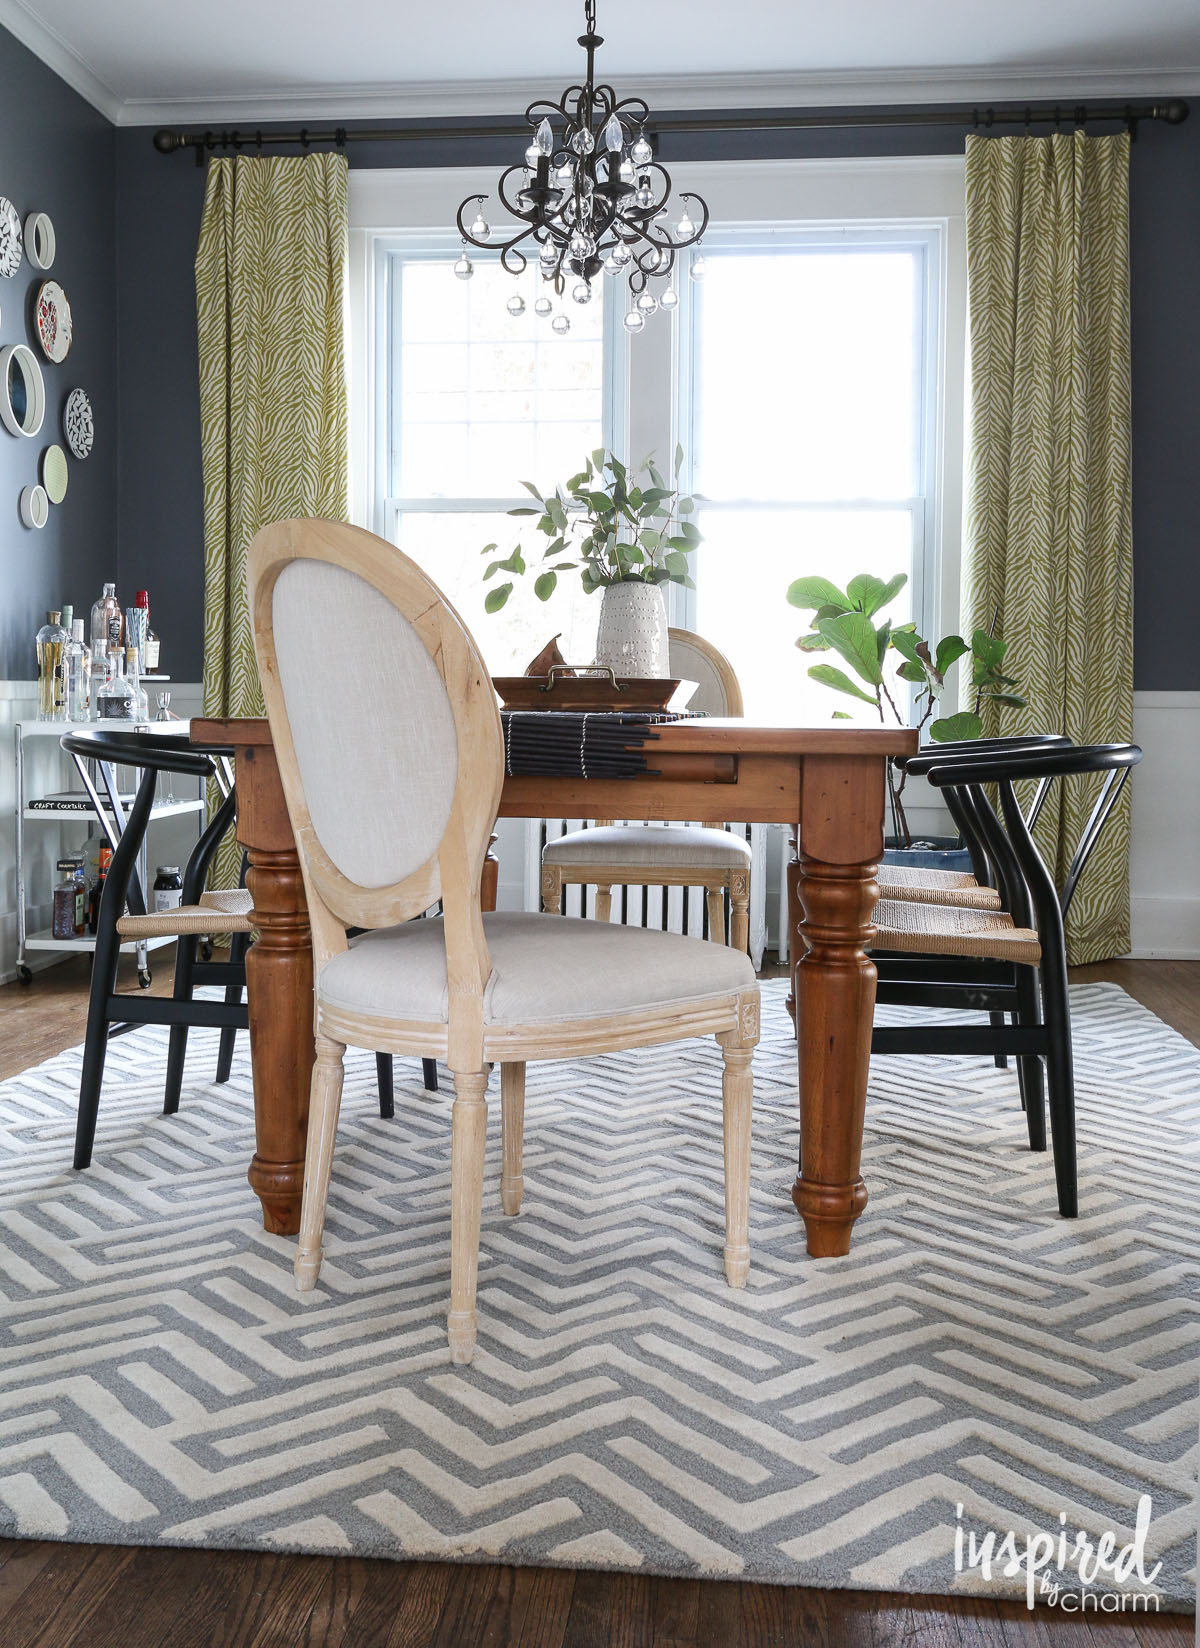 Best ideas about Rugs For Dining Room . Save or Pin New Rug for the Dining Room Now.